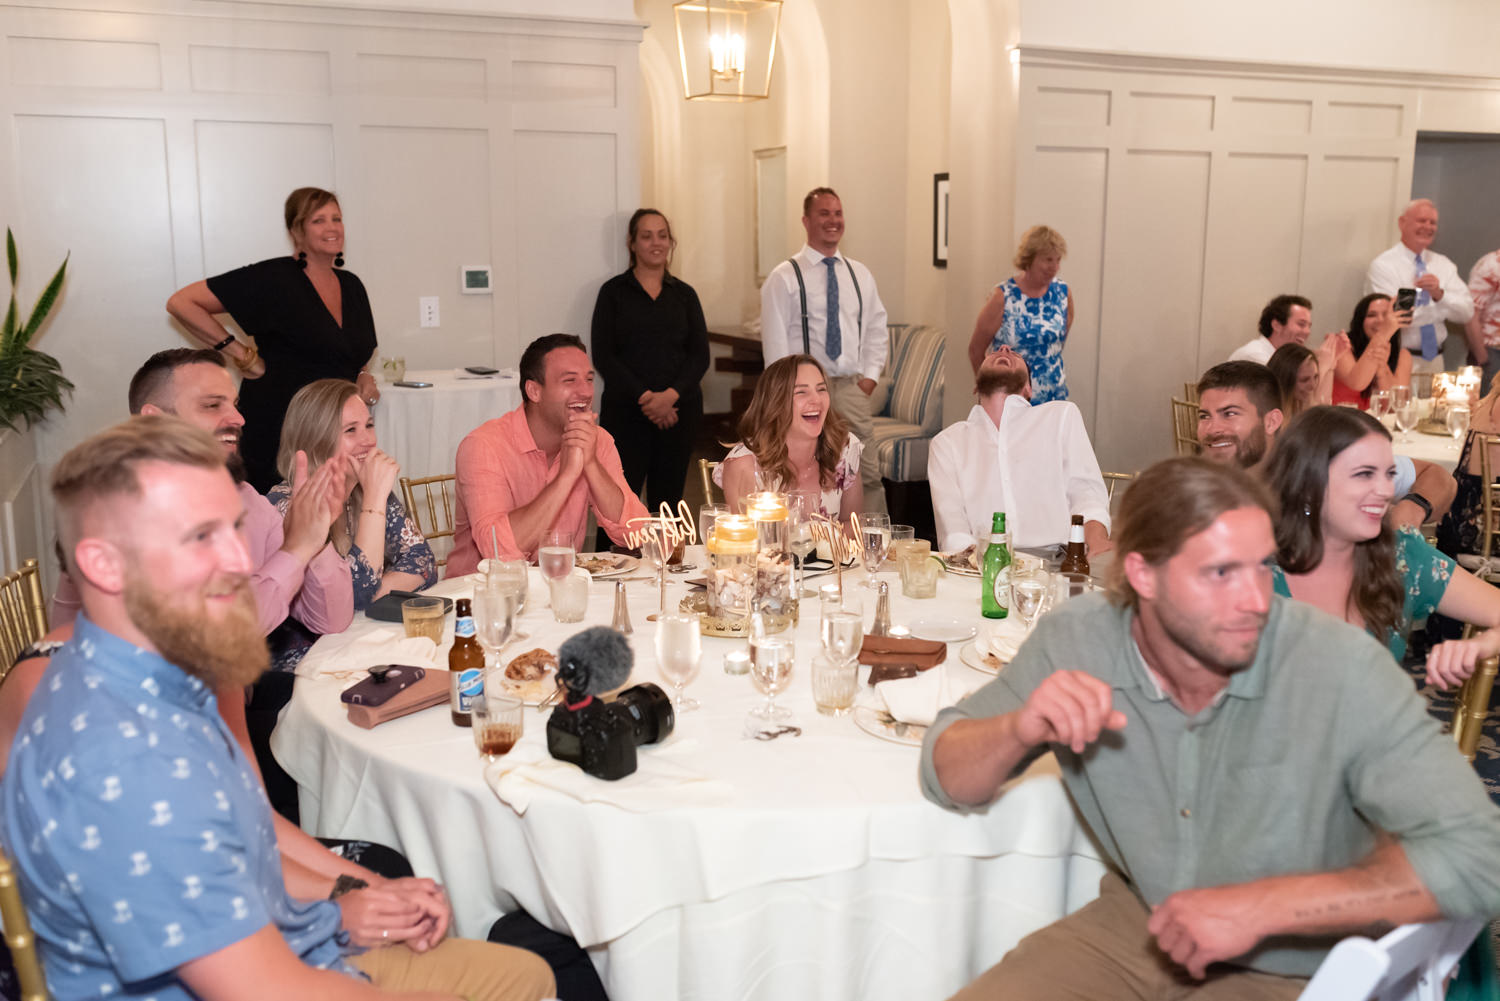 Laughing during toasts - Grande Dunes Ocean Club - Myrtle Beach